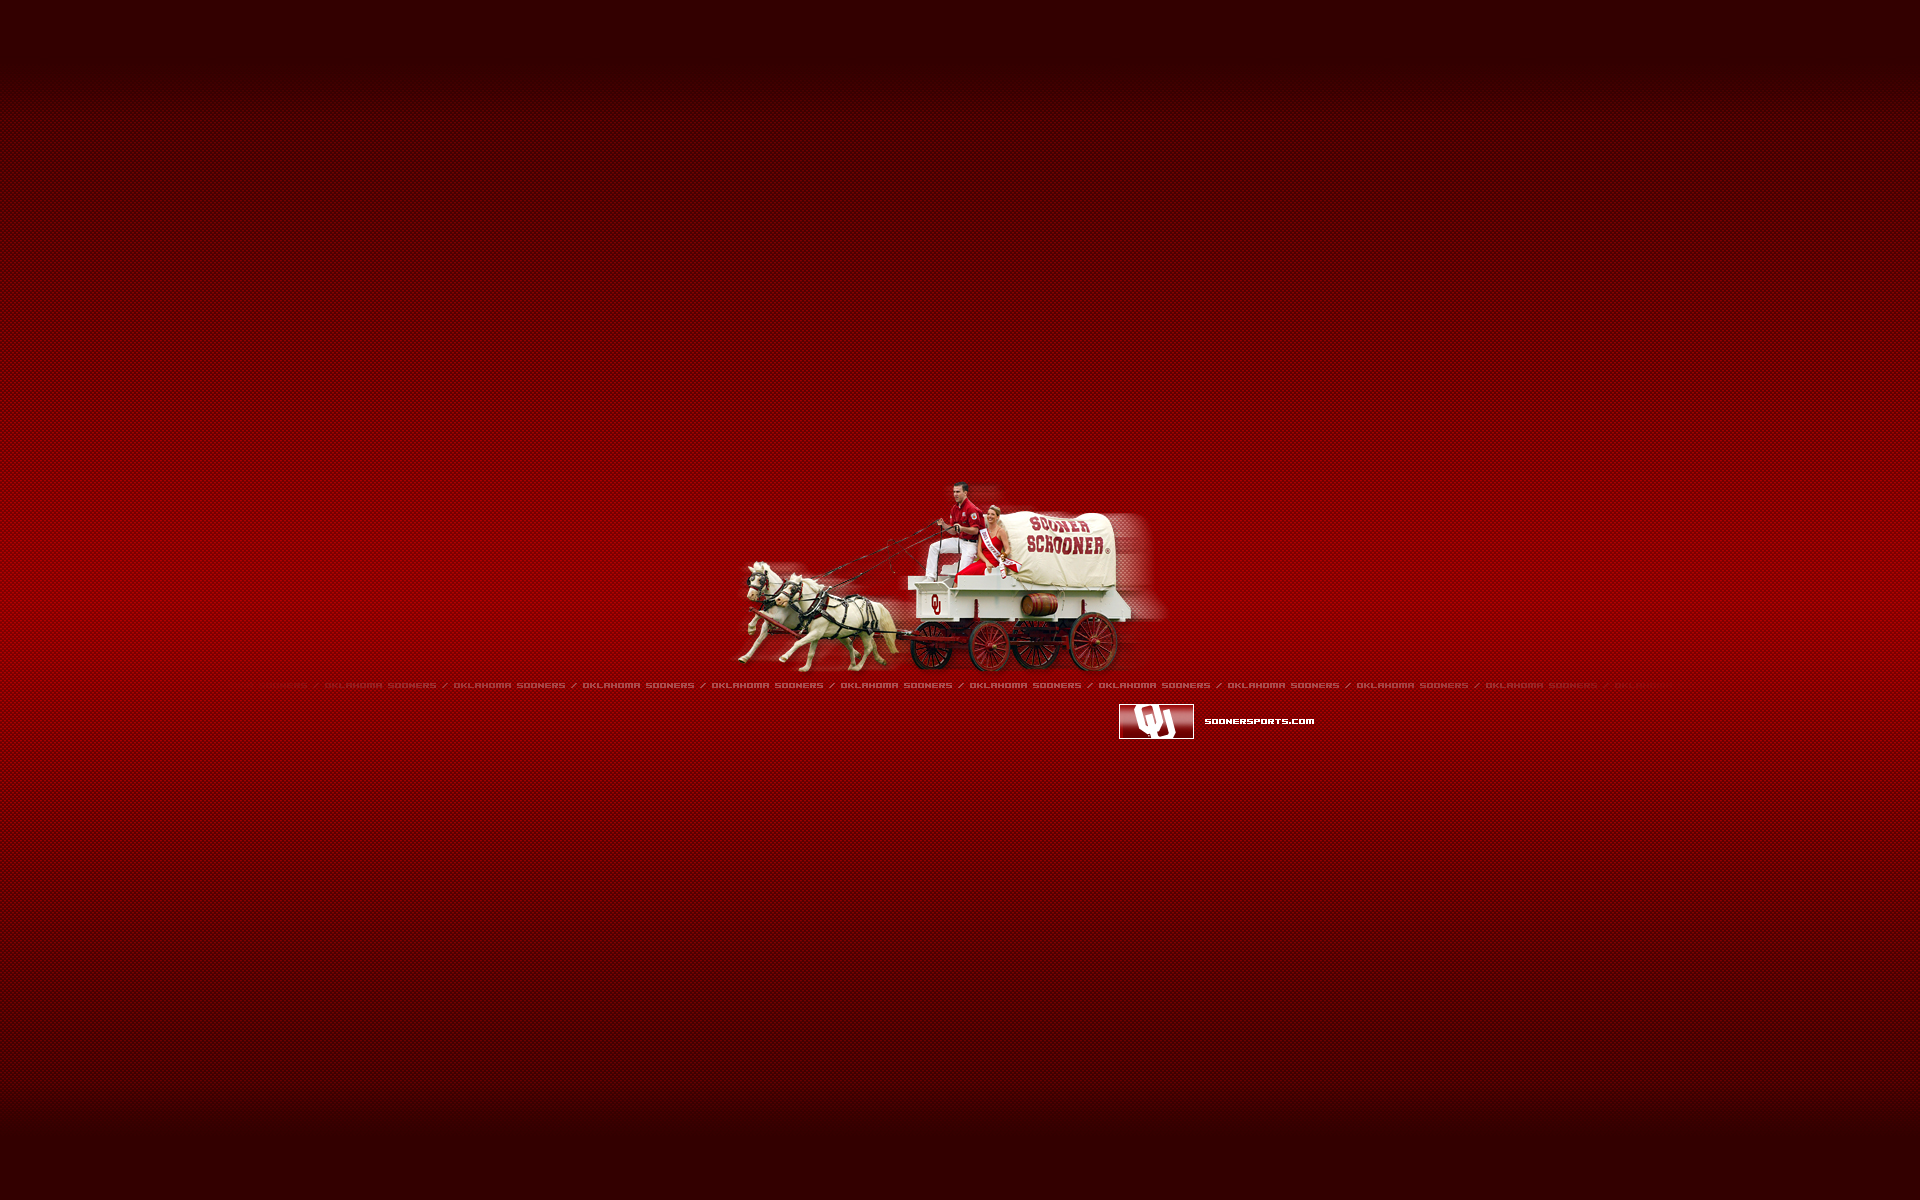 ou sooners wallpaper for laptop - photo #24